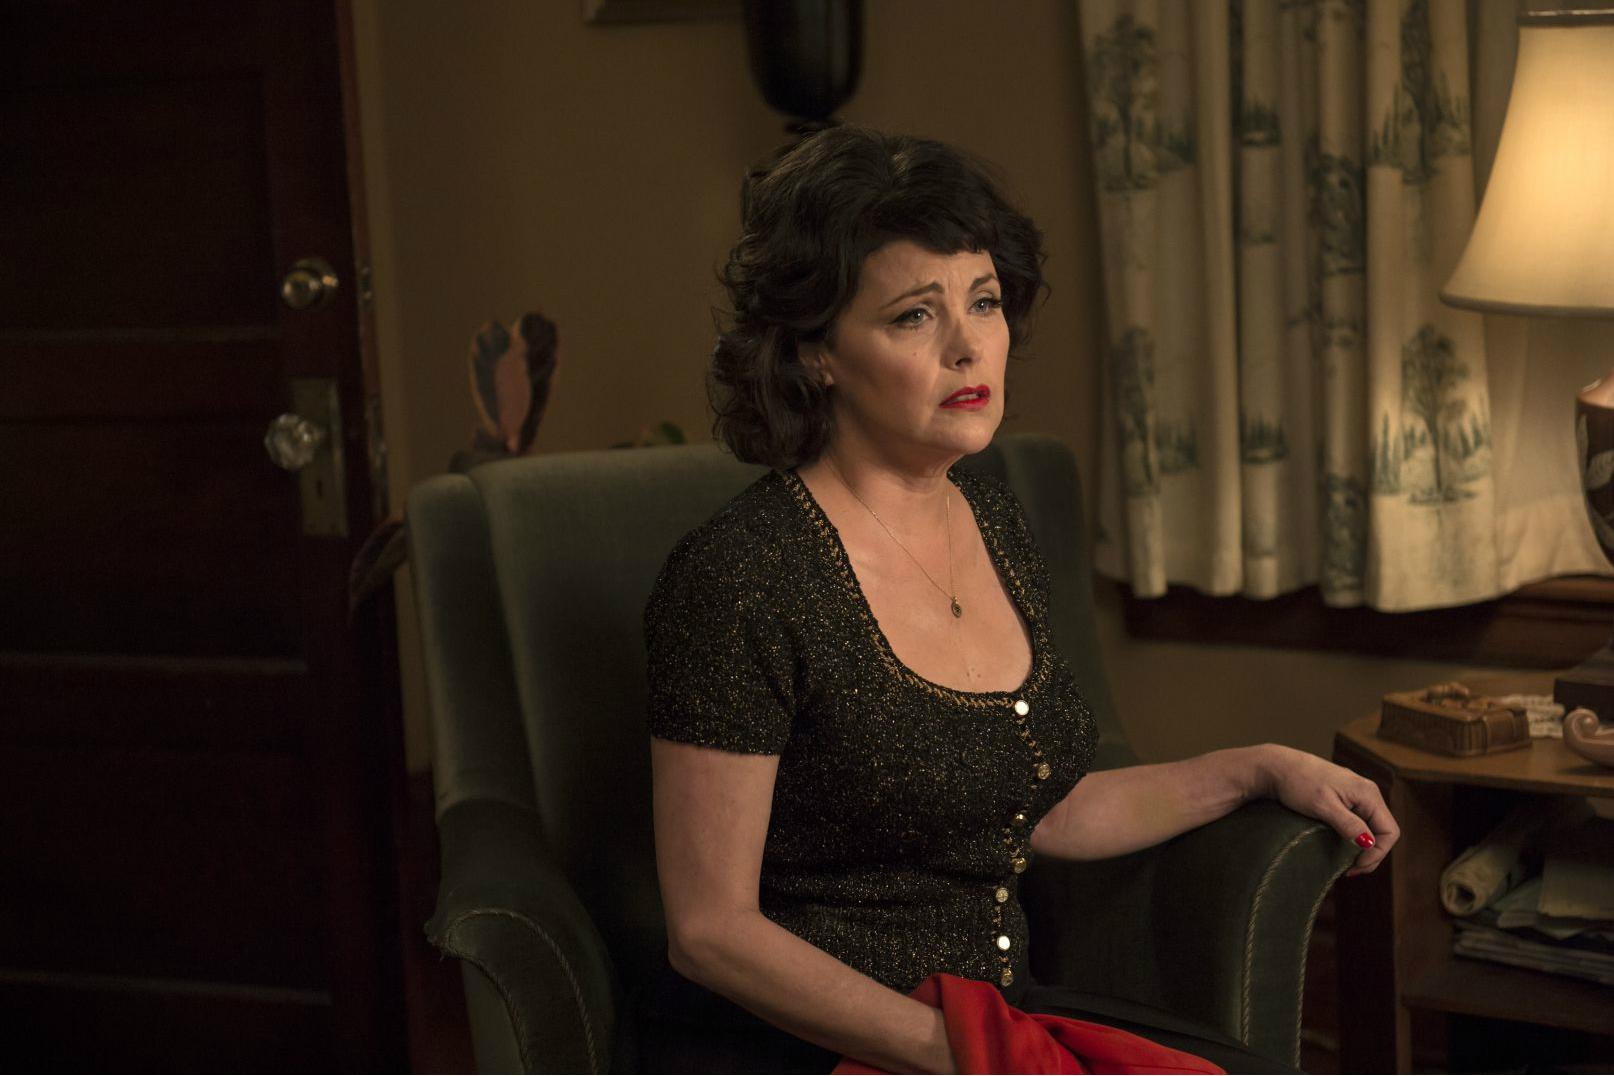 free online personals in twin peaks Because some very unsettling news is emerging on a topic i've been following quite intently in my free time  misuse online personals  twin peaks' and pearl.